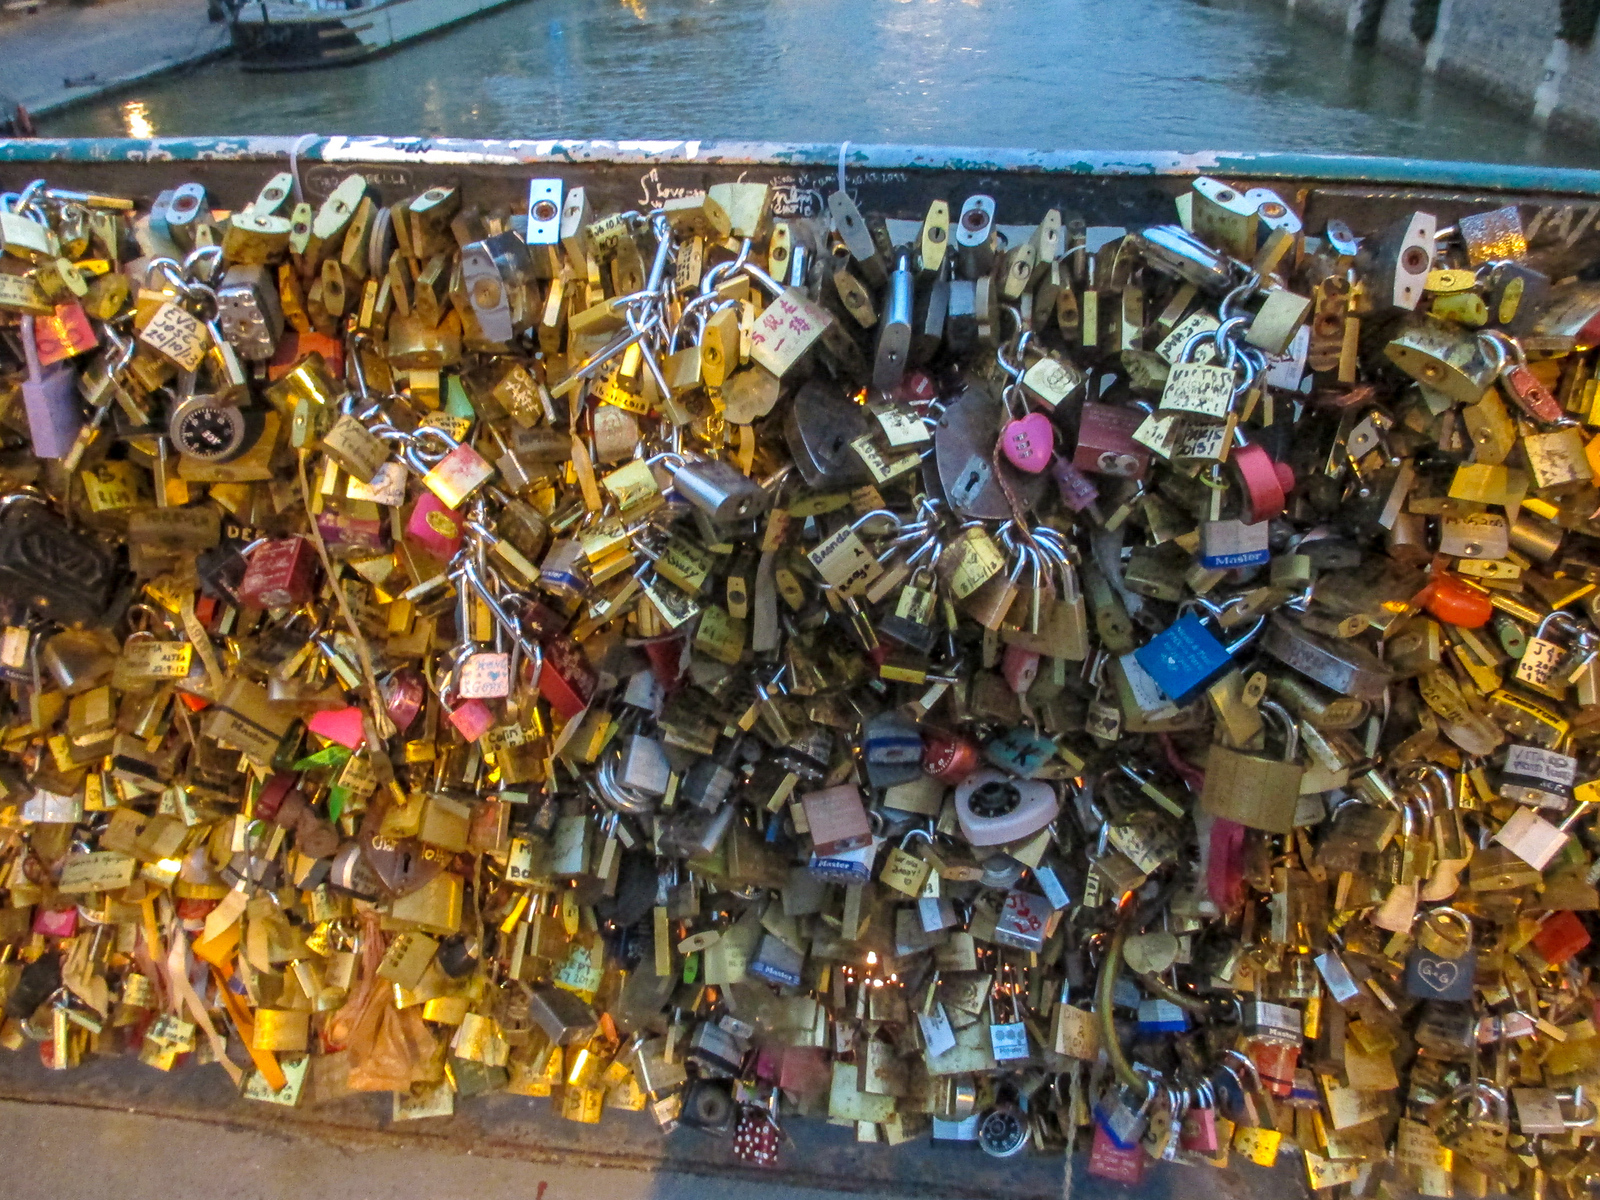 not sure what to do on a weekend in paris? get some love locks!